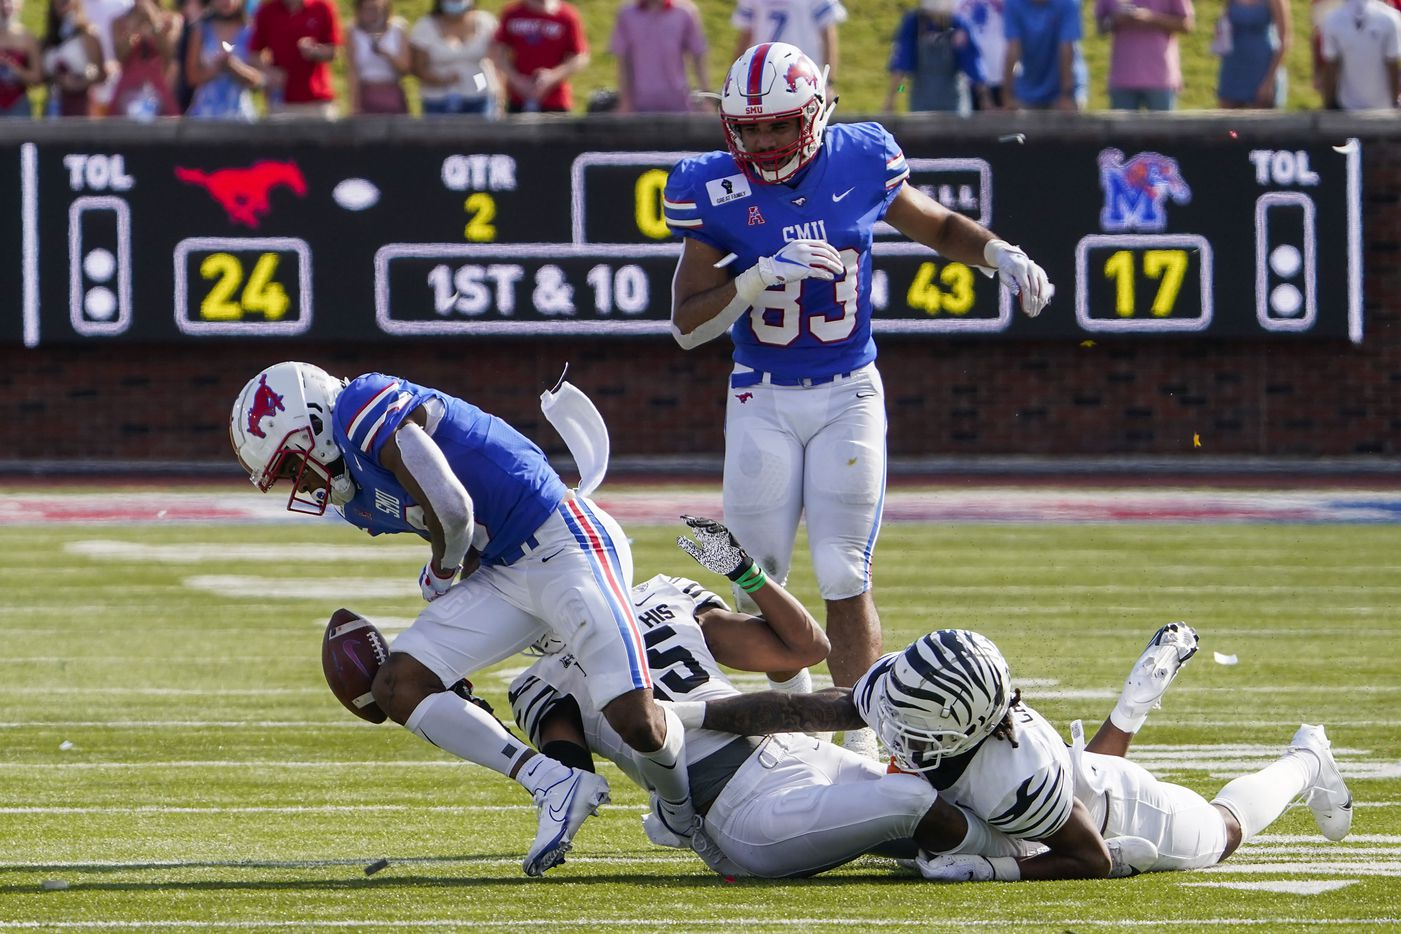 SMU wide receiver Reggie Roberson Jr. (8) turns the ball over with a fumble after a hit from Memphis defensive back Quindell Johnson (15) and defensive back T.J. Carter (2) during the first half of an NCAA football game at Ford Stadium on Saturday, Oct. 3, 2020, in Dallas.